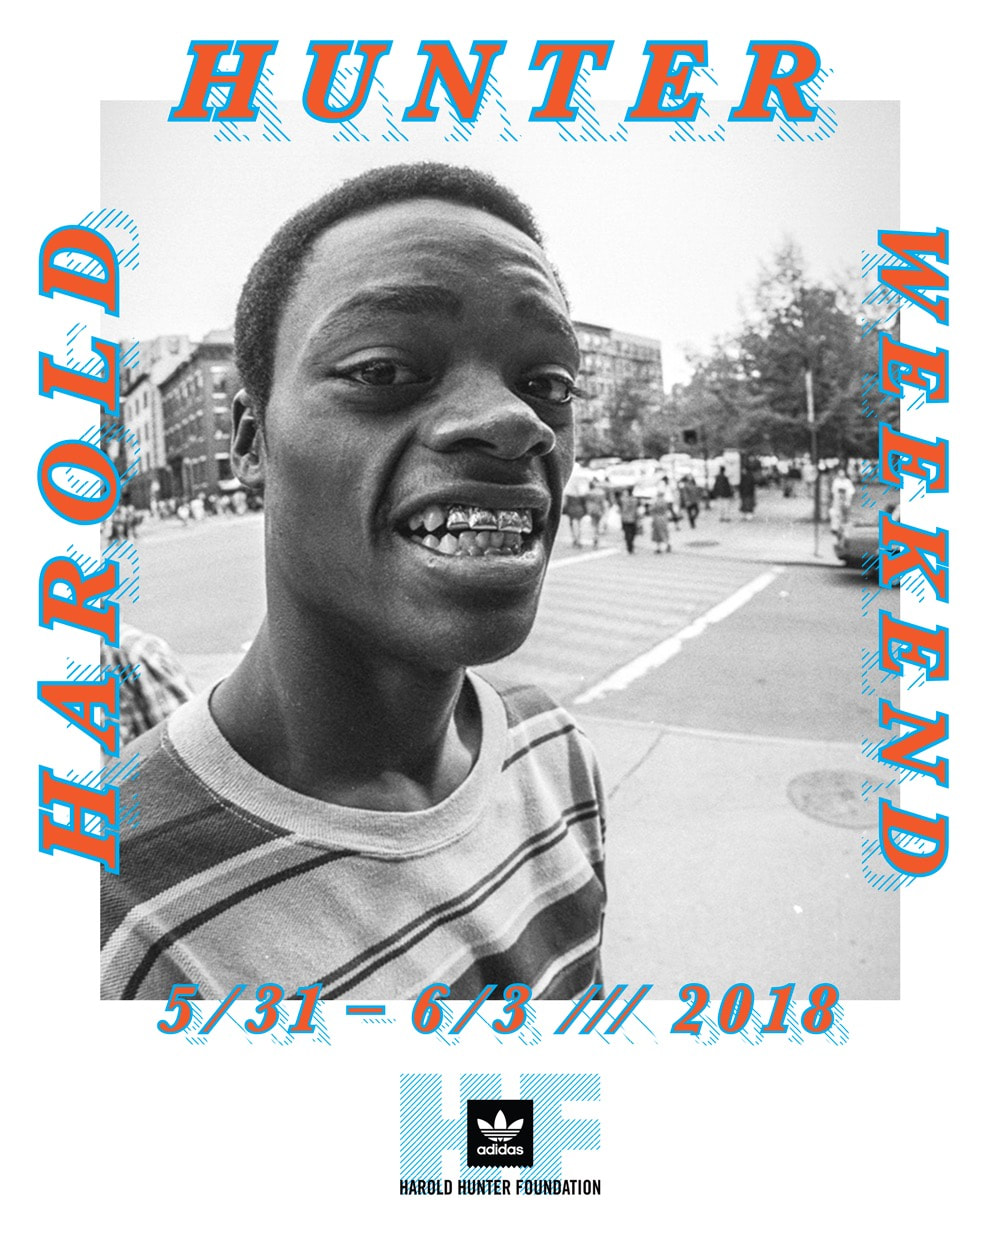 Harold Hunter day 2018